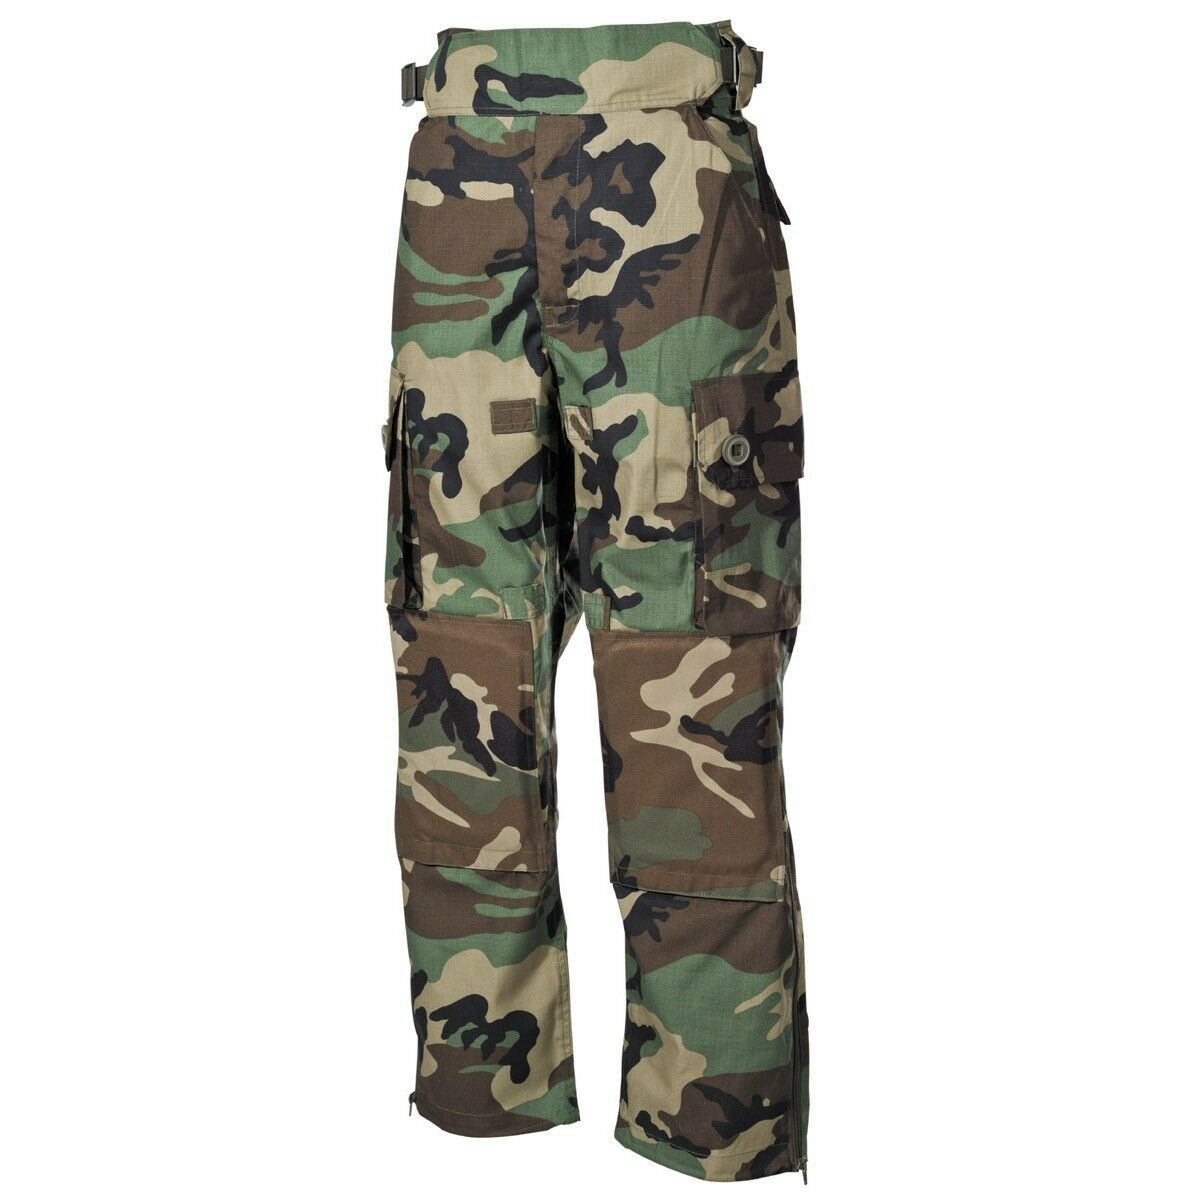 High Quality Tactical Battle Trousers - Comandos - Military Pants - Woodland